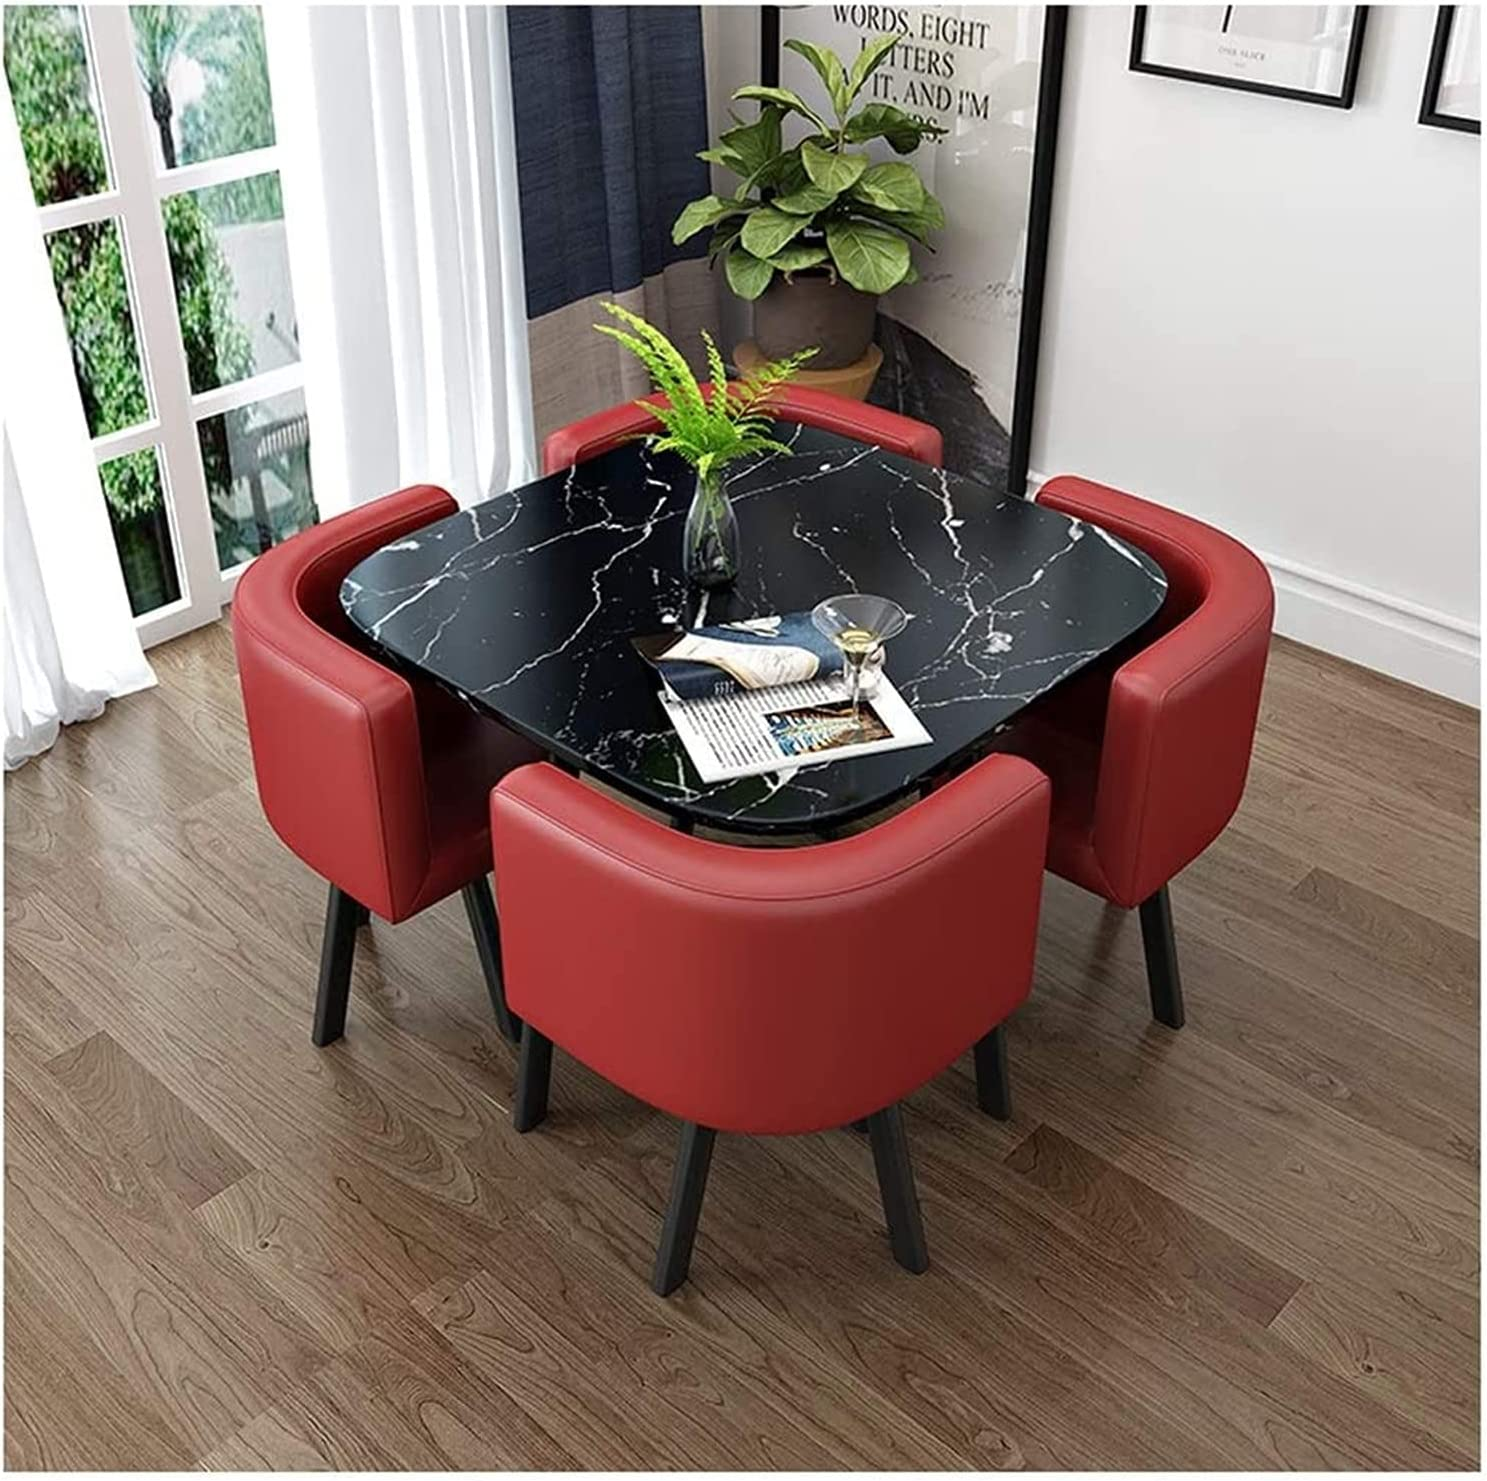 BUYT Office Reception Room Popular product Club Table and Modern Chair Bargain Set Desig